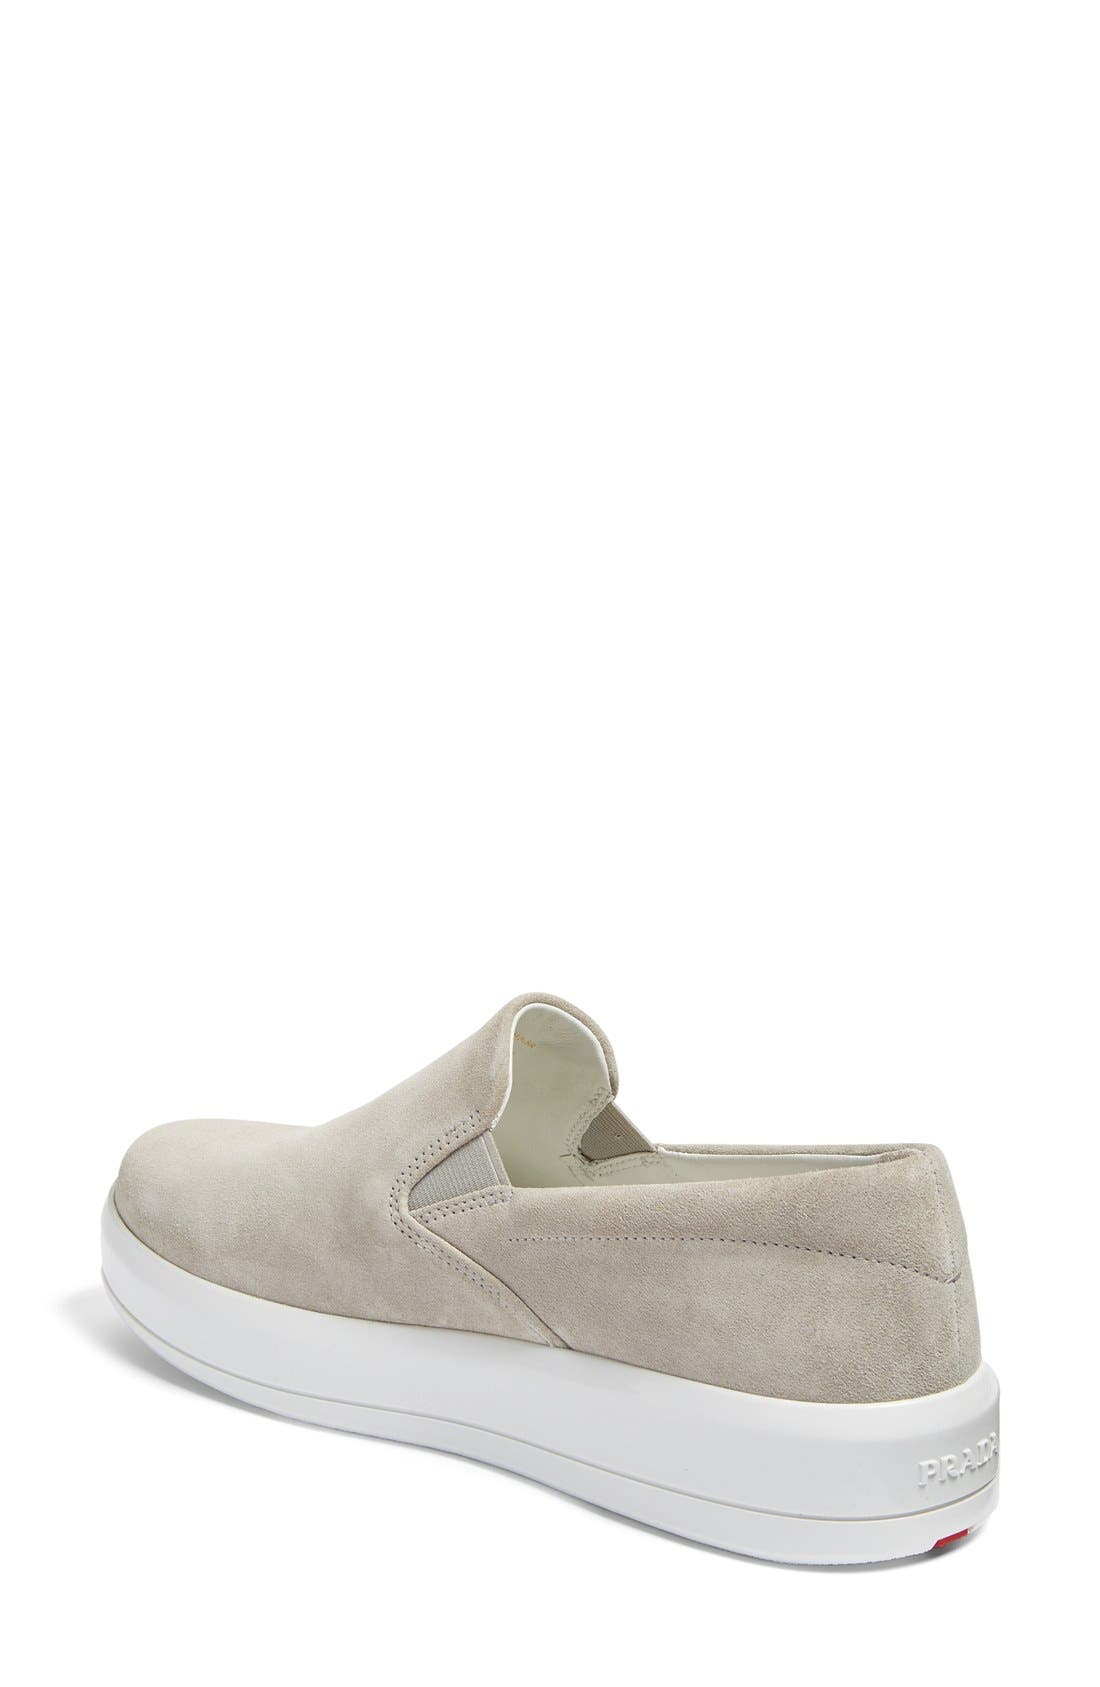 Slip-On Sneaker,                             Alternate thumbnail 94, color,